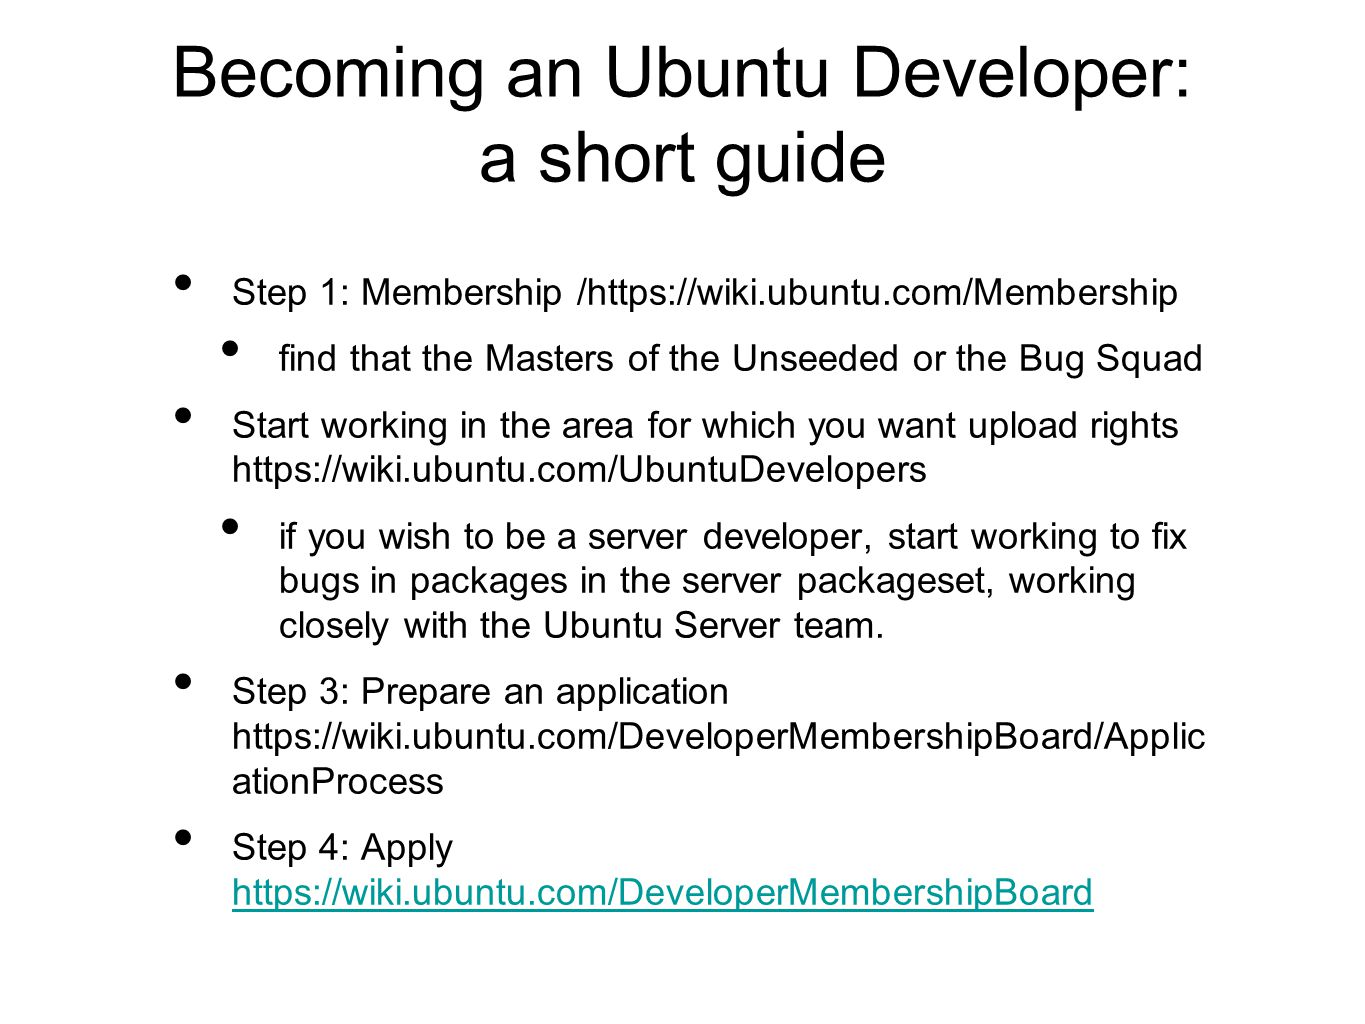 Becoming an Ubuntu Developer: a short guide Step 1: Membership /https://wiki.ubuntu.com/Membership find that the Masters of the Unseeded or the Bug Squad Start working in the area for which you want upload rights https://wiki.ubuntu.com/UbuntuDevelopers if you wish to be a server developer, start working to fix bugs in packages in the server packageset, working closely with the Ubuntu Server team.